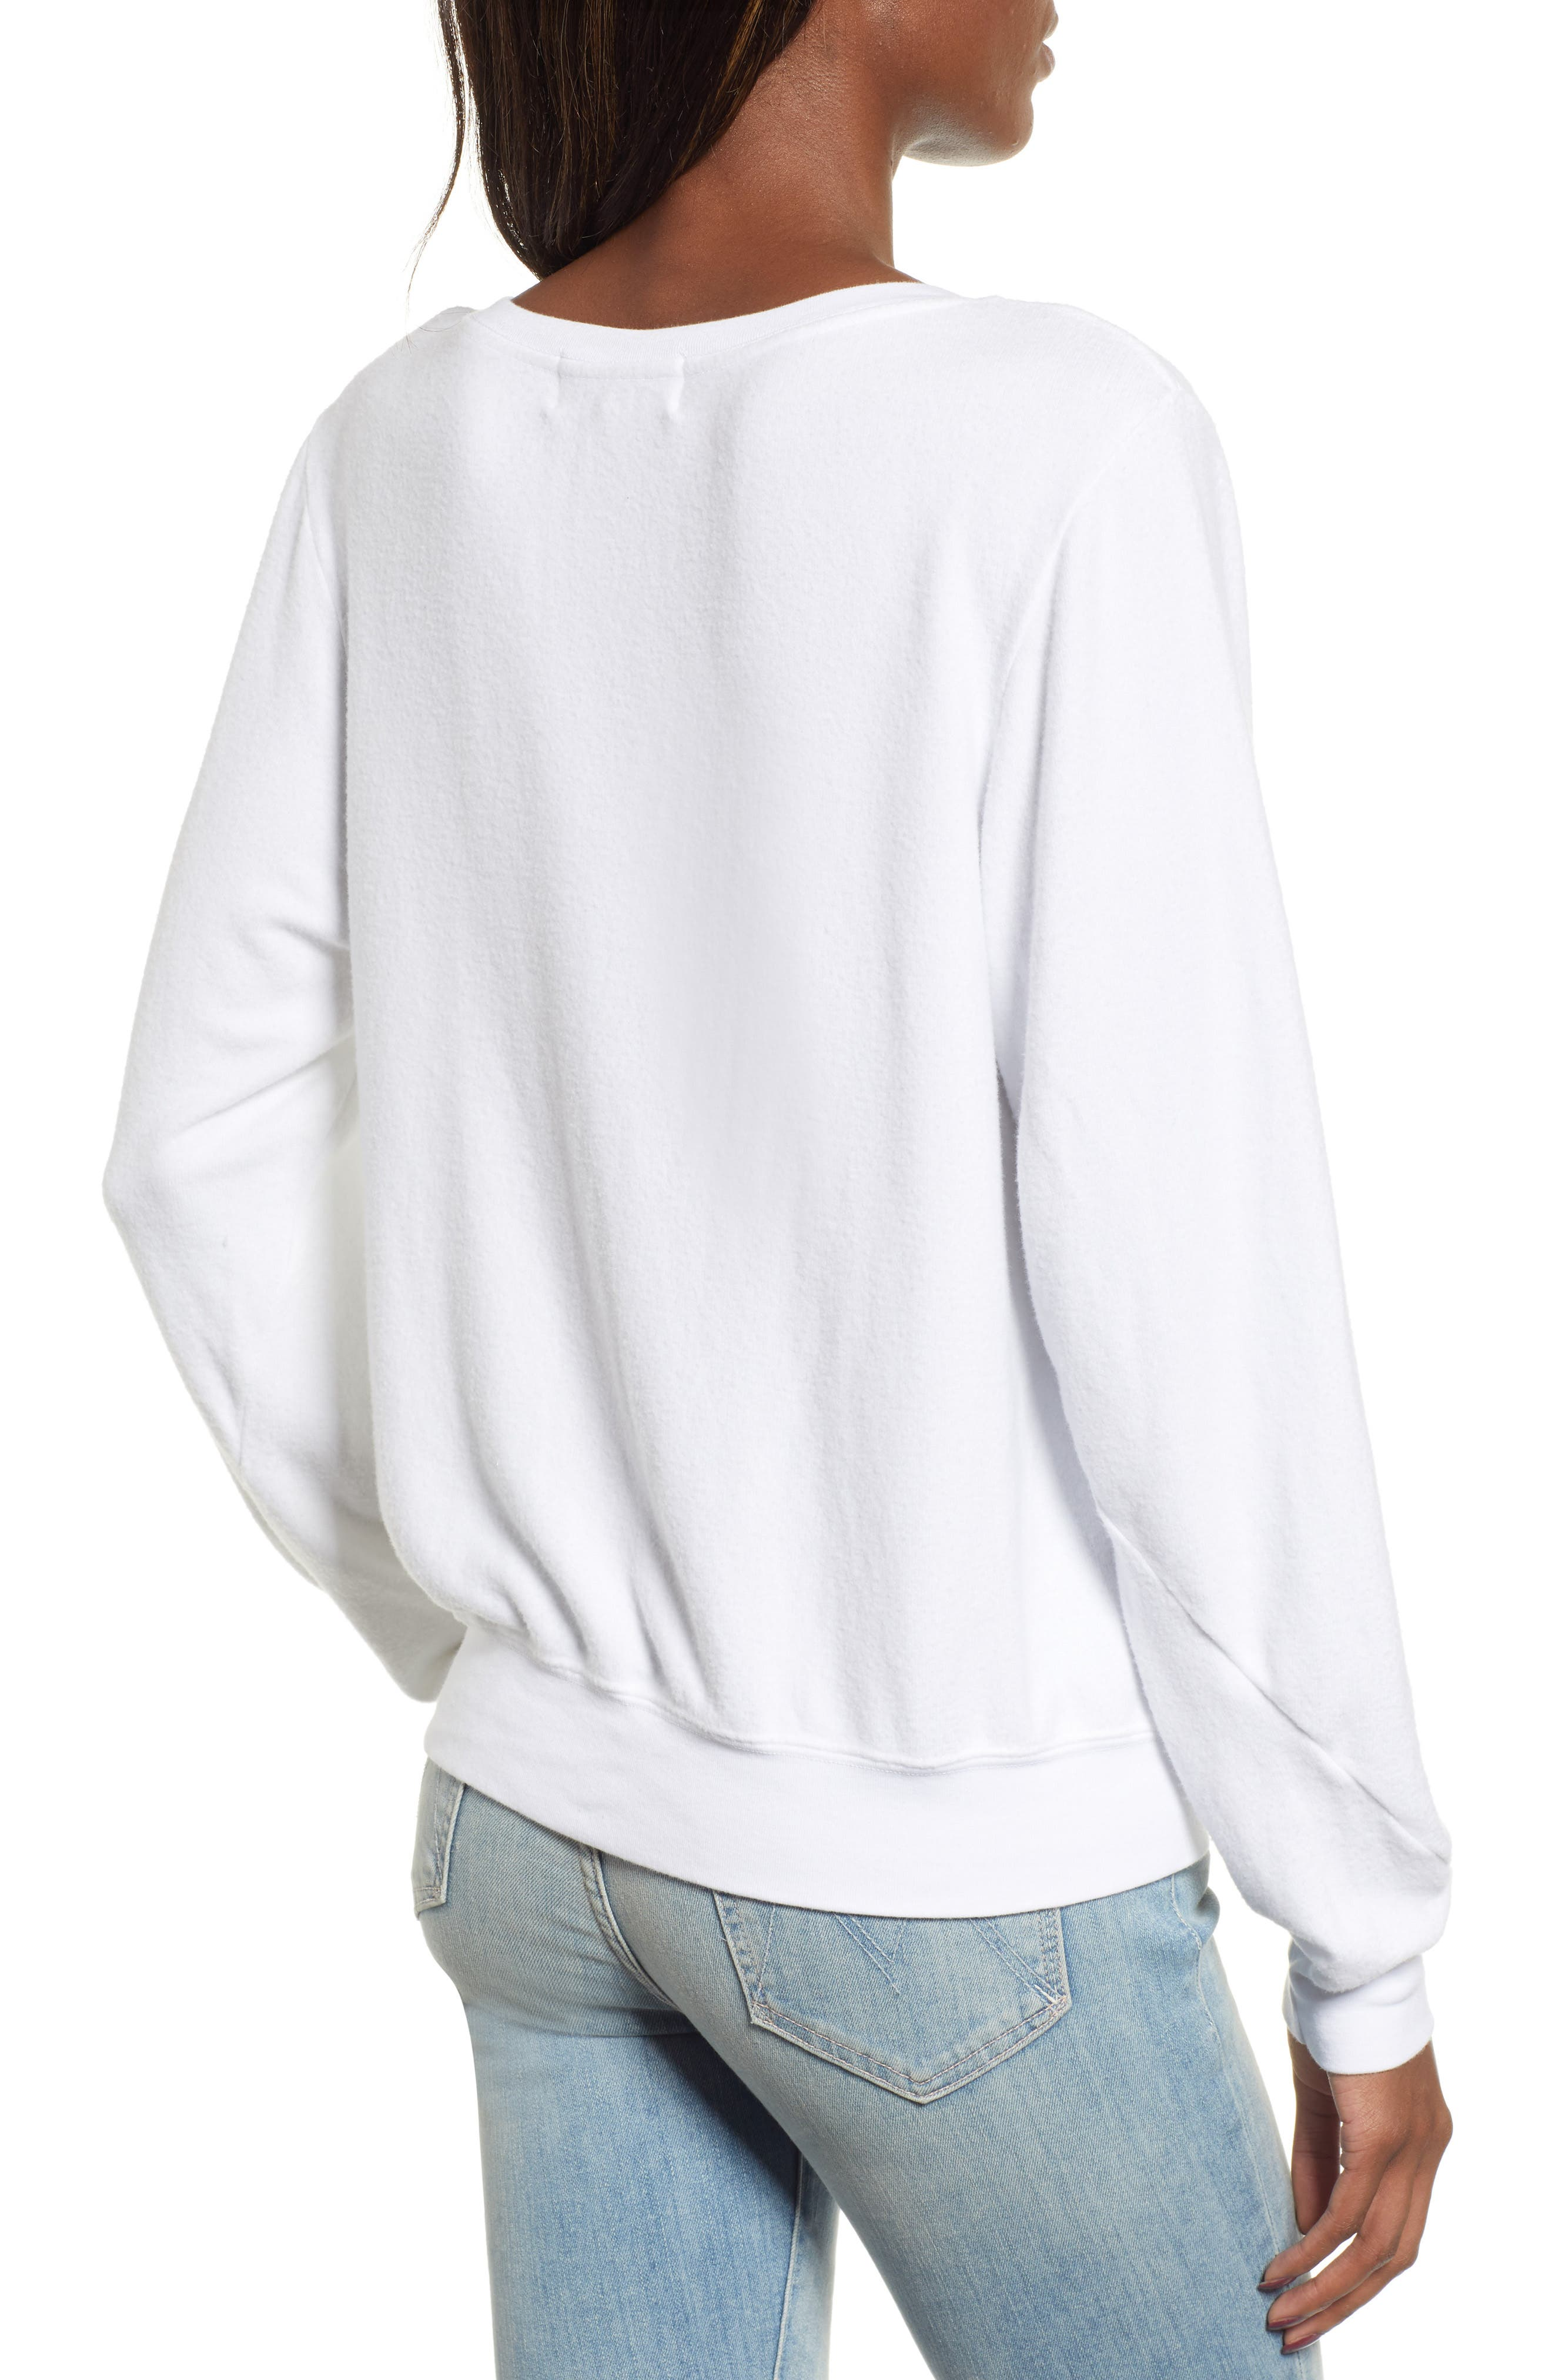 Baggy Beach Jumper - Yule Love It Pullover,                             Alternate thumbnail 2, color,                             CLEAN WHITE